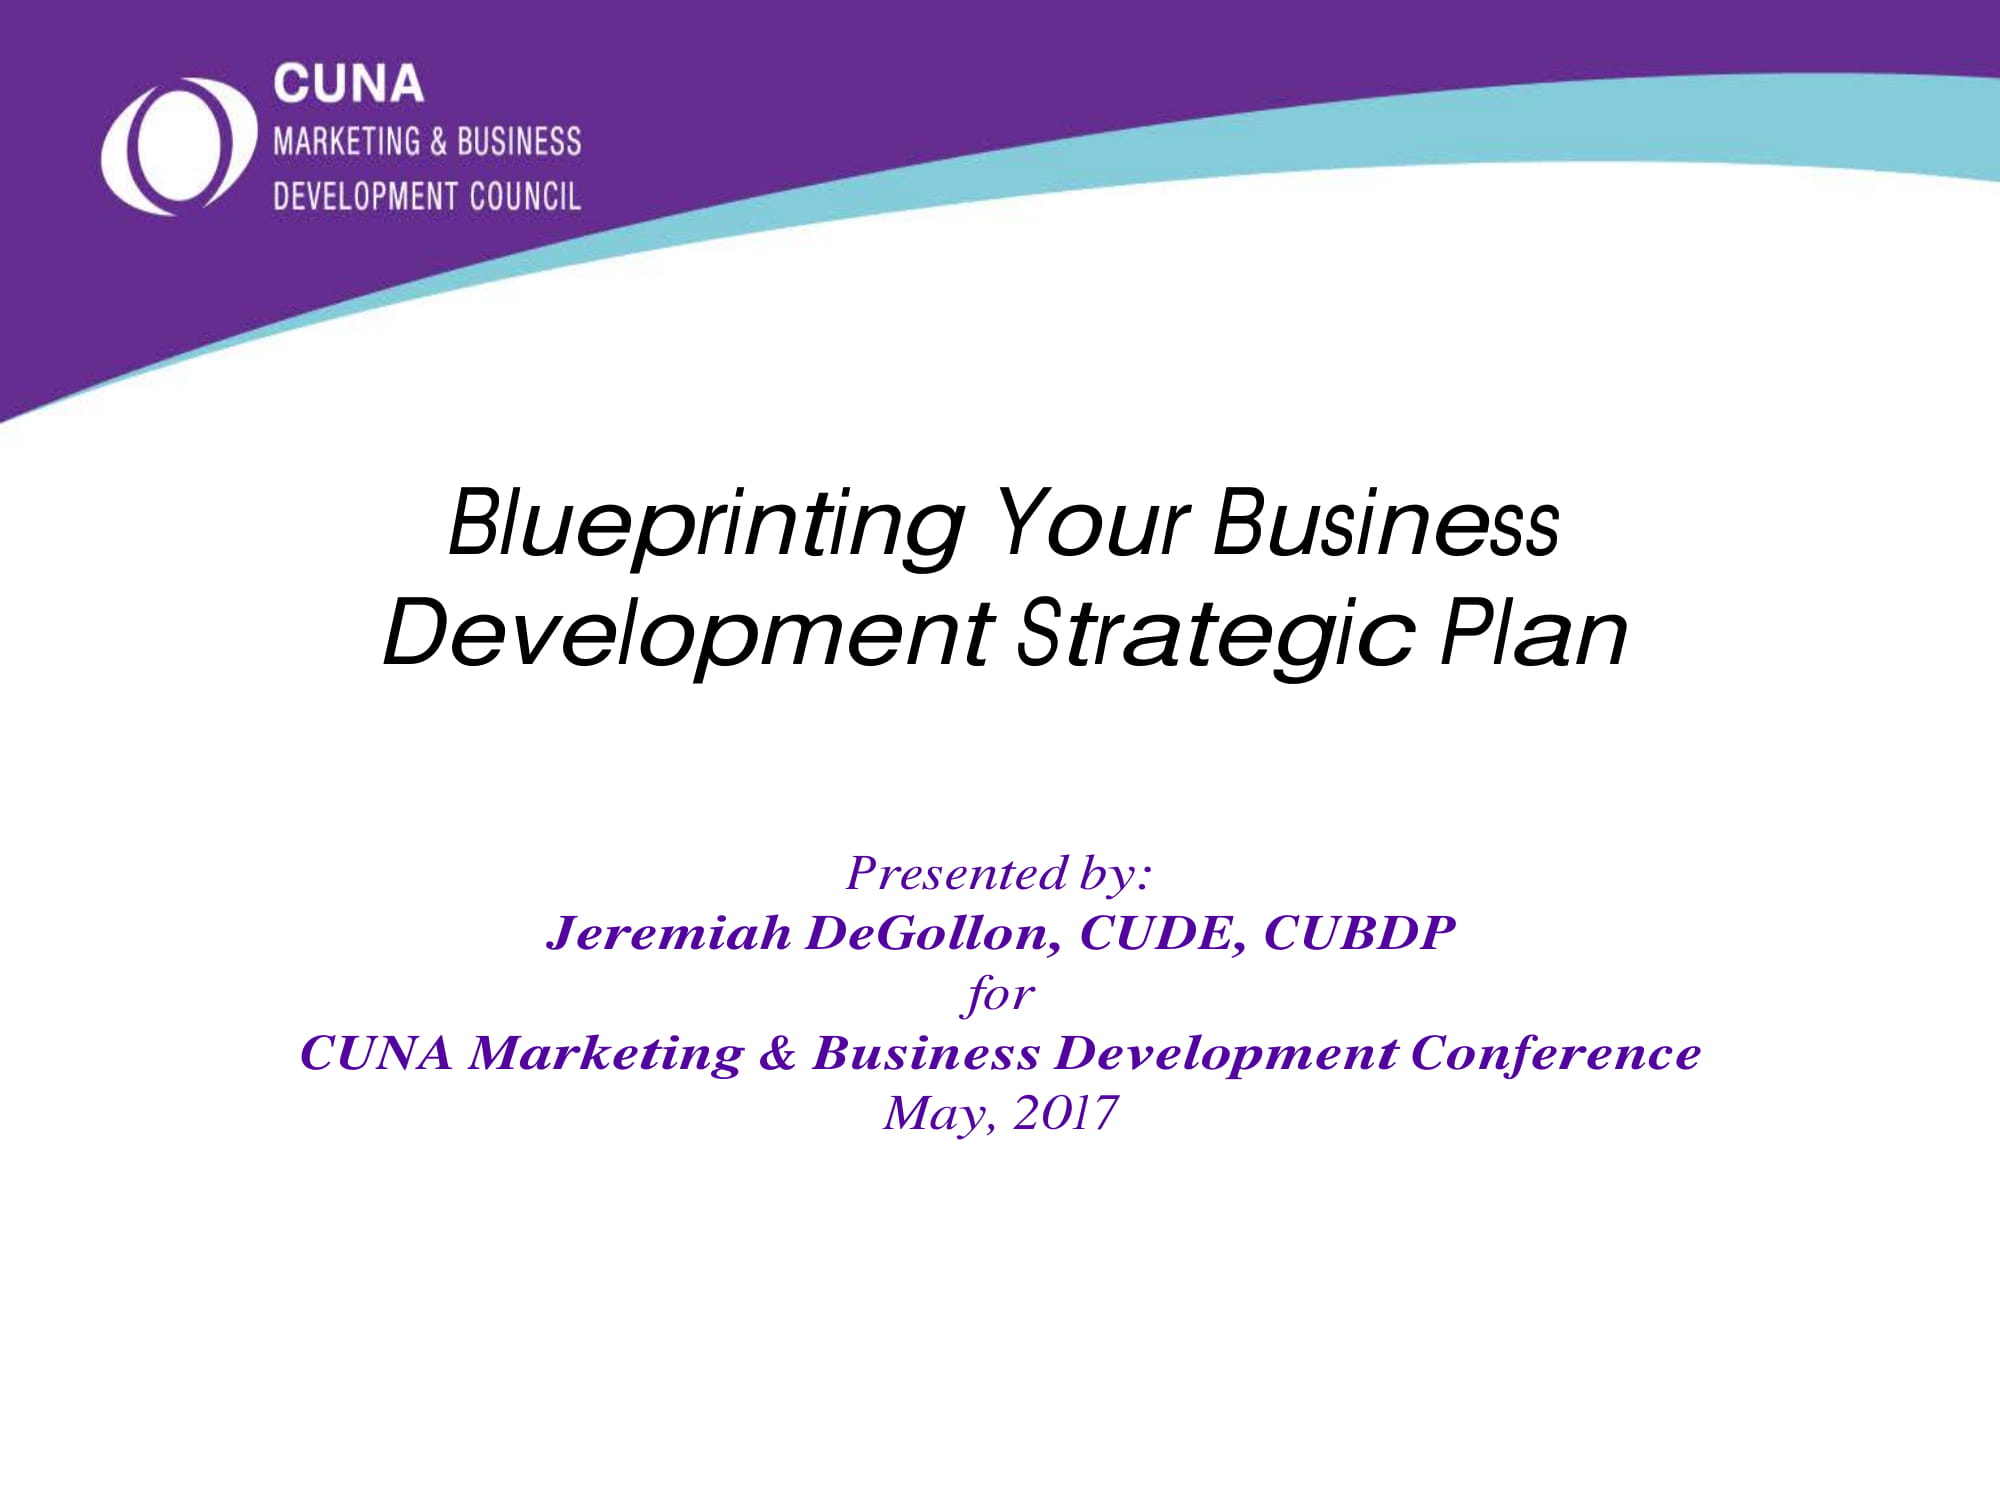 business development strategic plan example 01